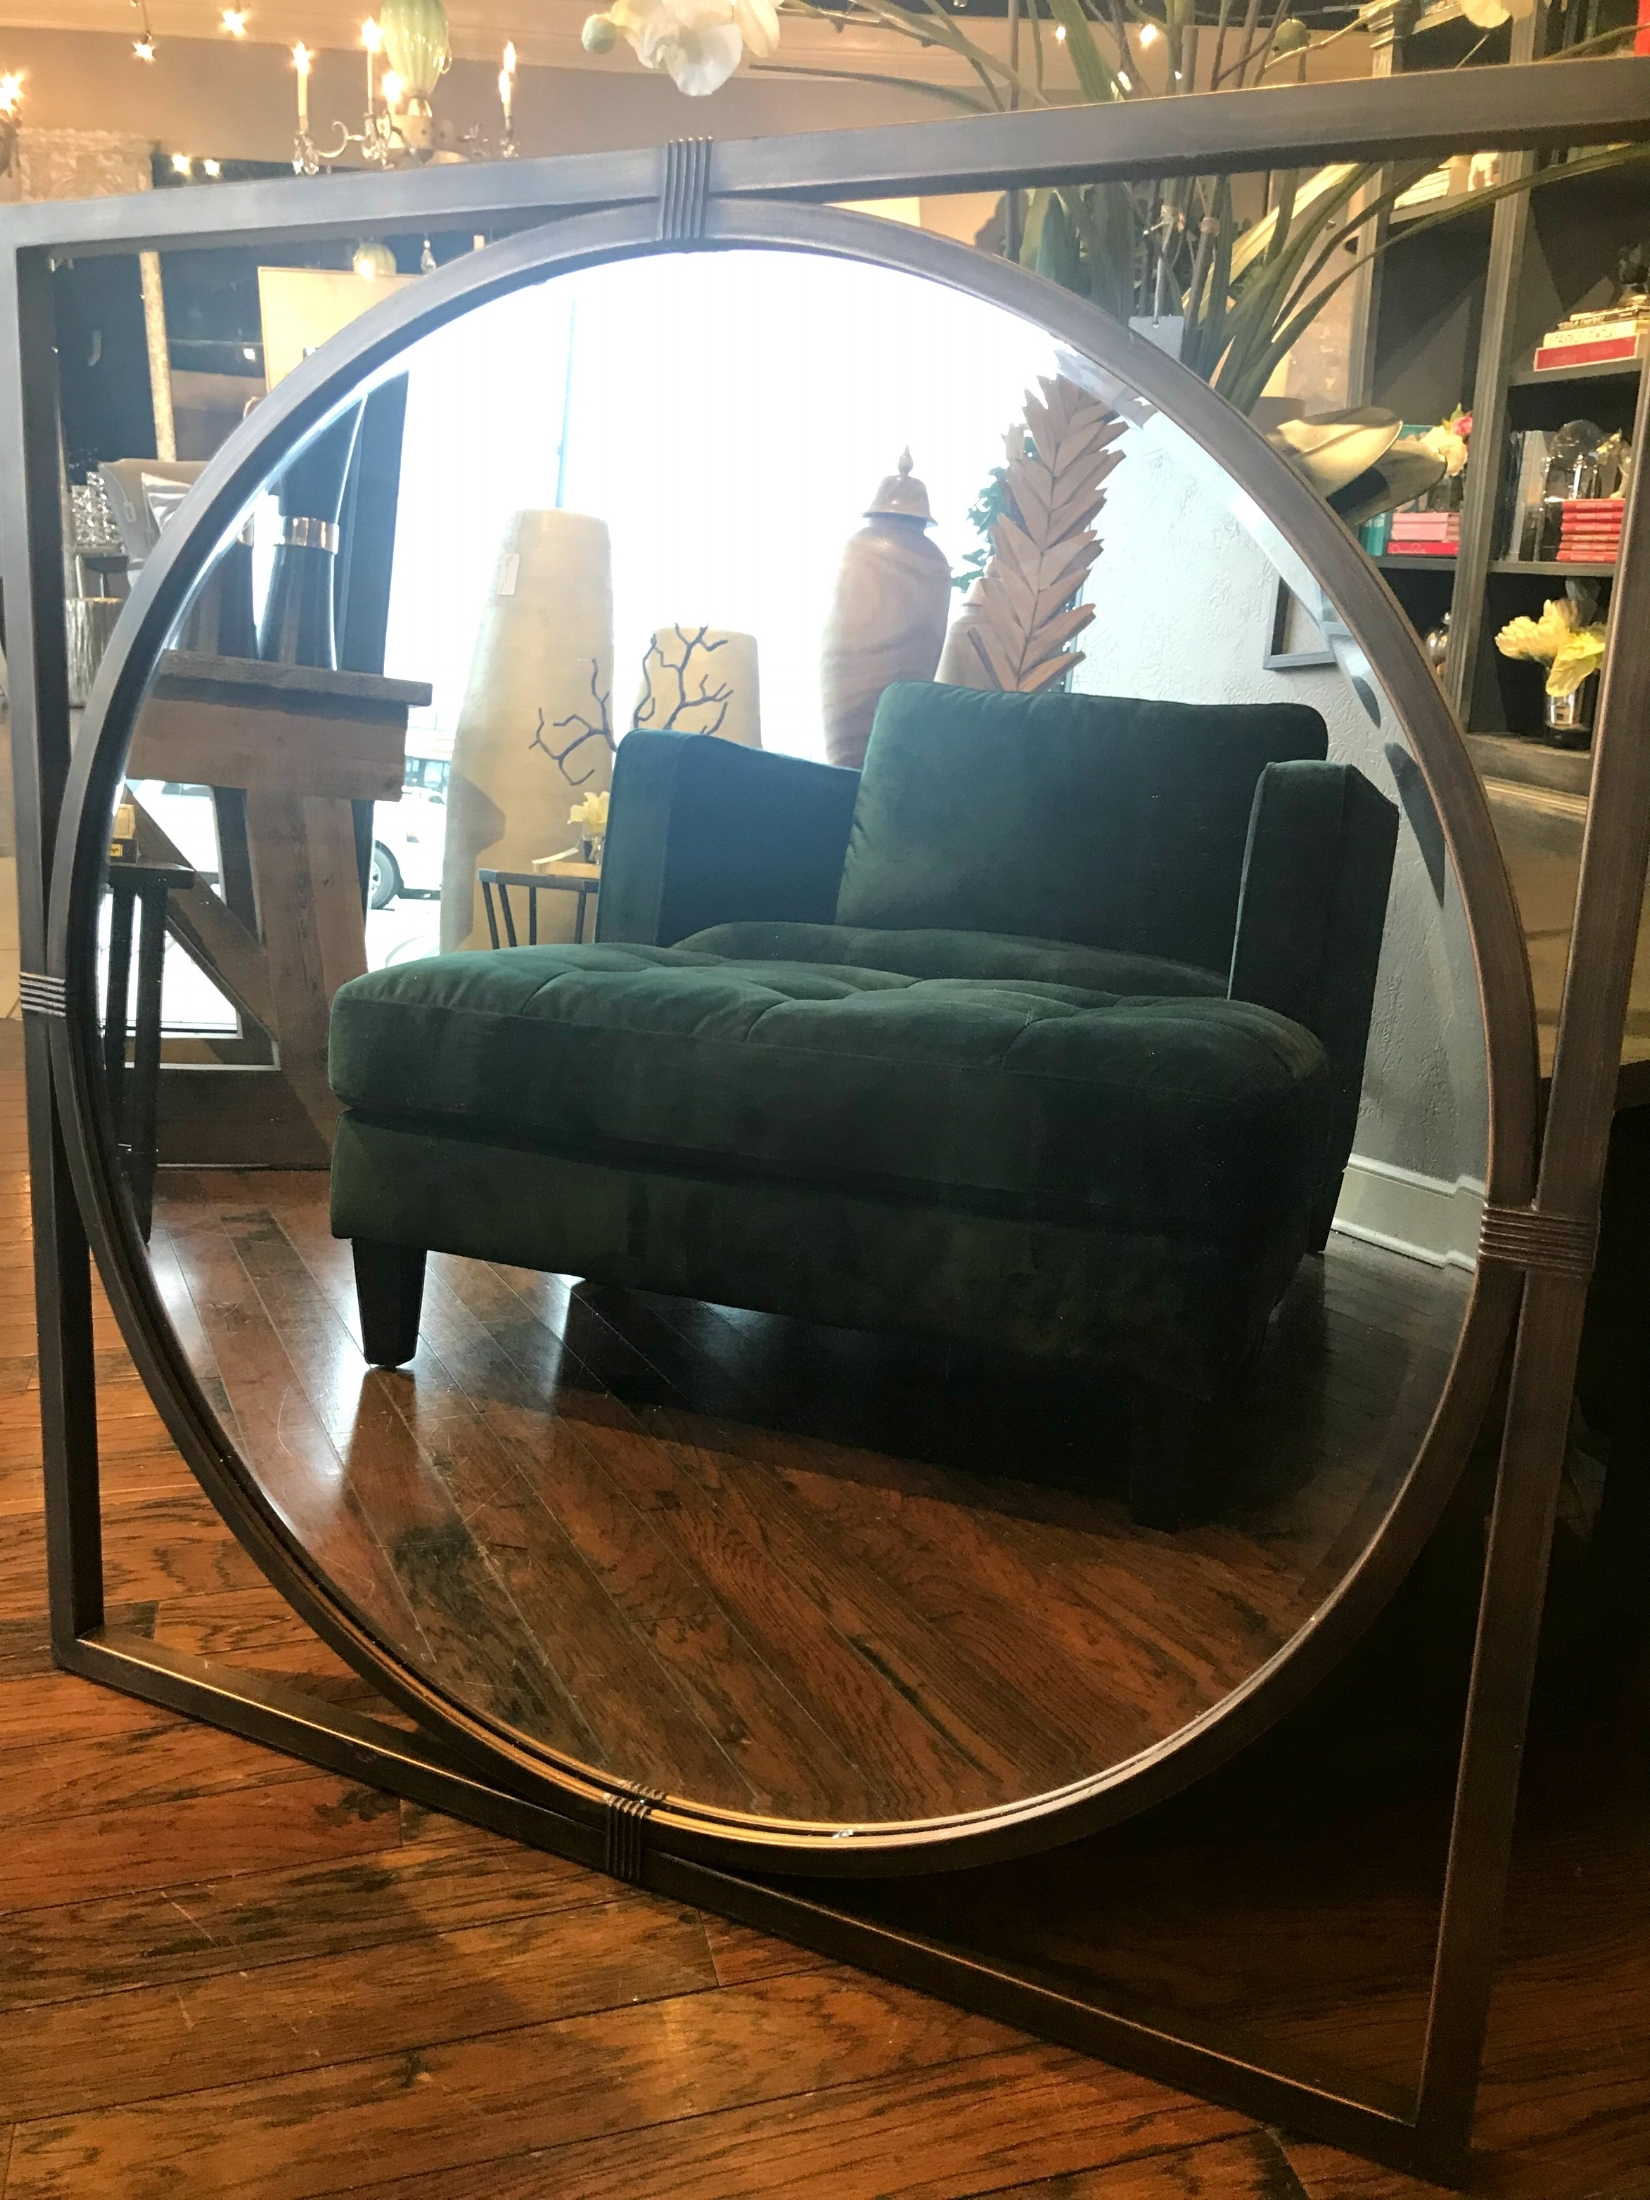 Objects Of Interest - This green chair has a personality all it's own. Adding other eye catching pieces such as a unique article for the wall, a bright floral, or some quirky lamps will help tie together the origonality of the space.